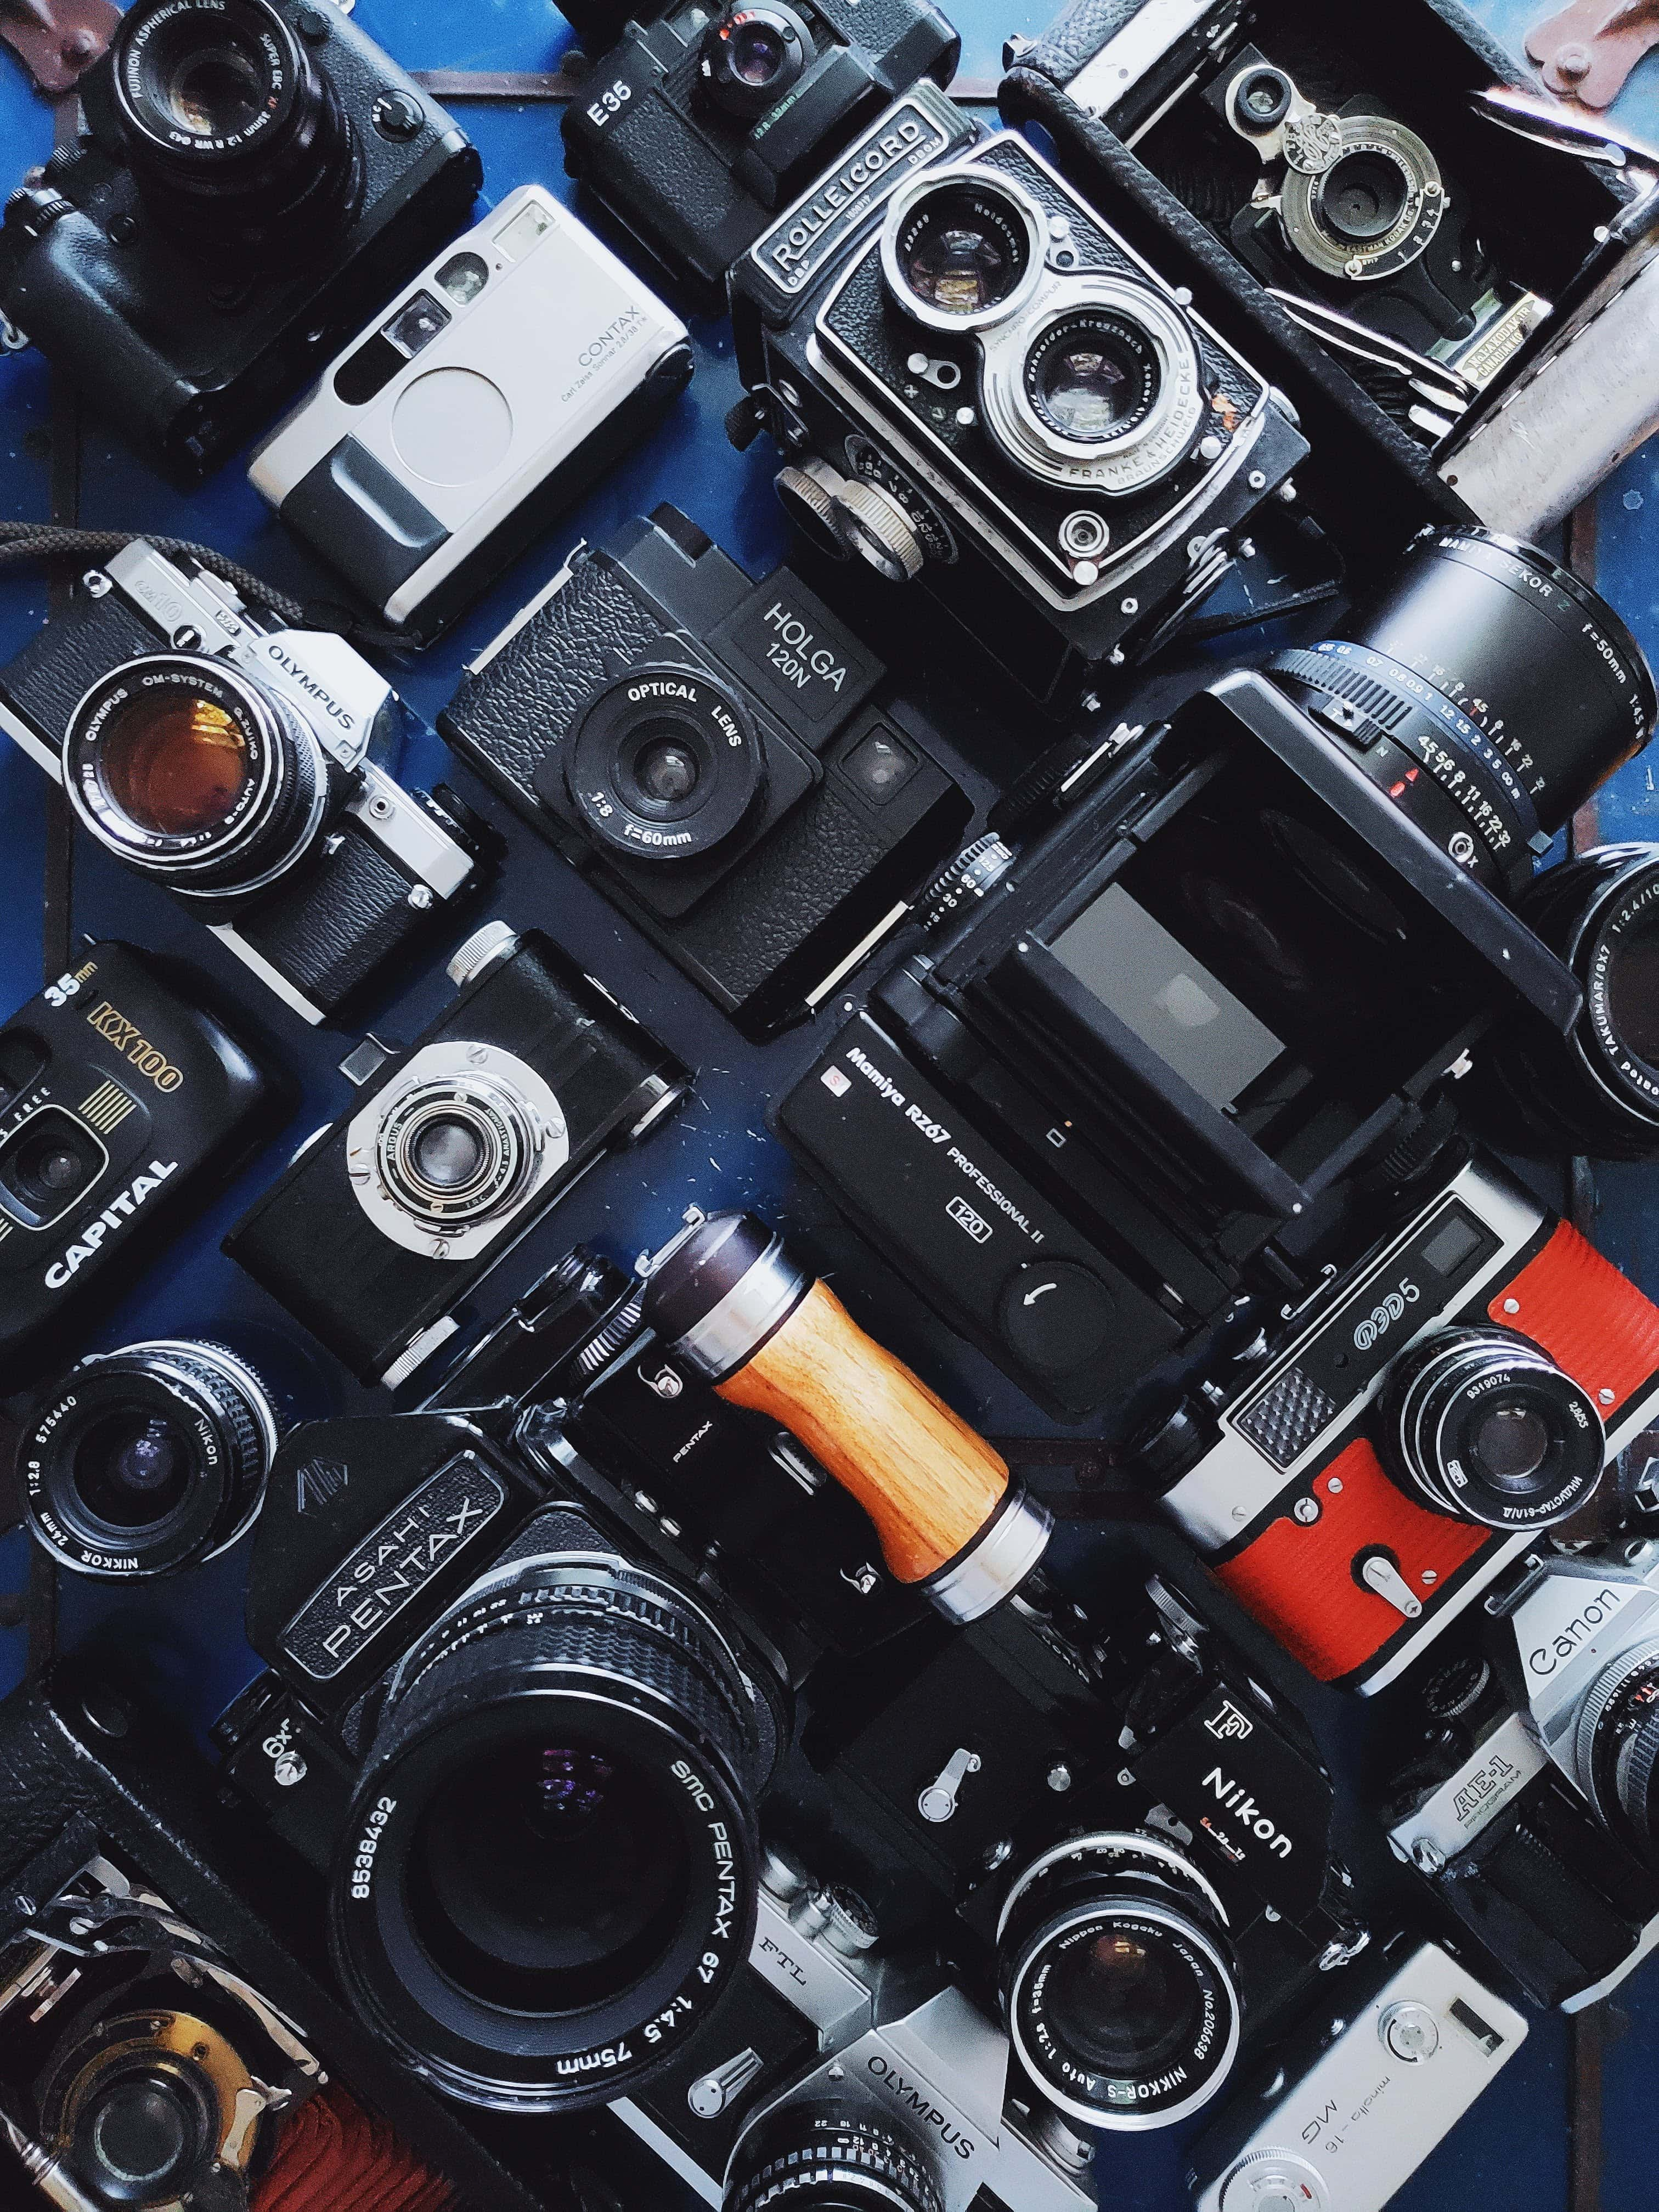 Filmmaking Trends in 2020 - An Image of Many Cameras